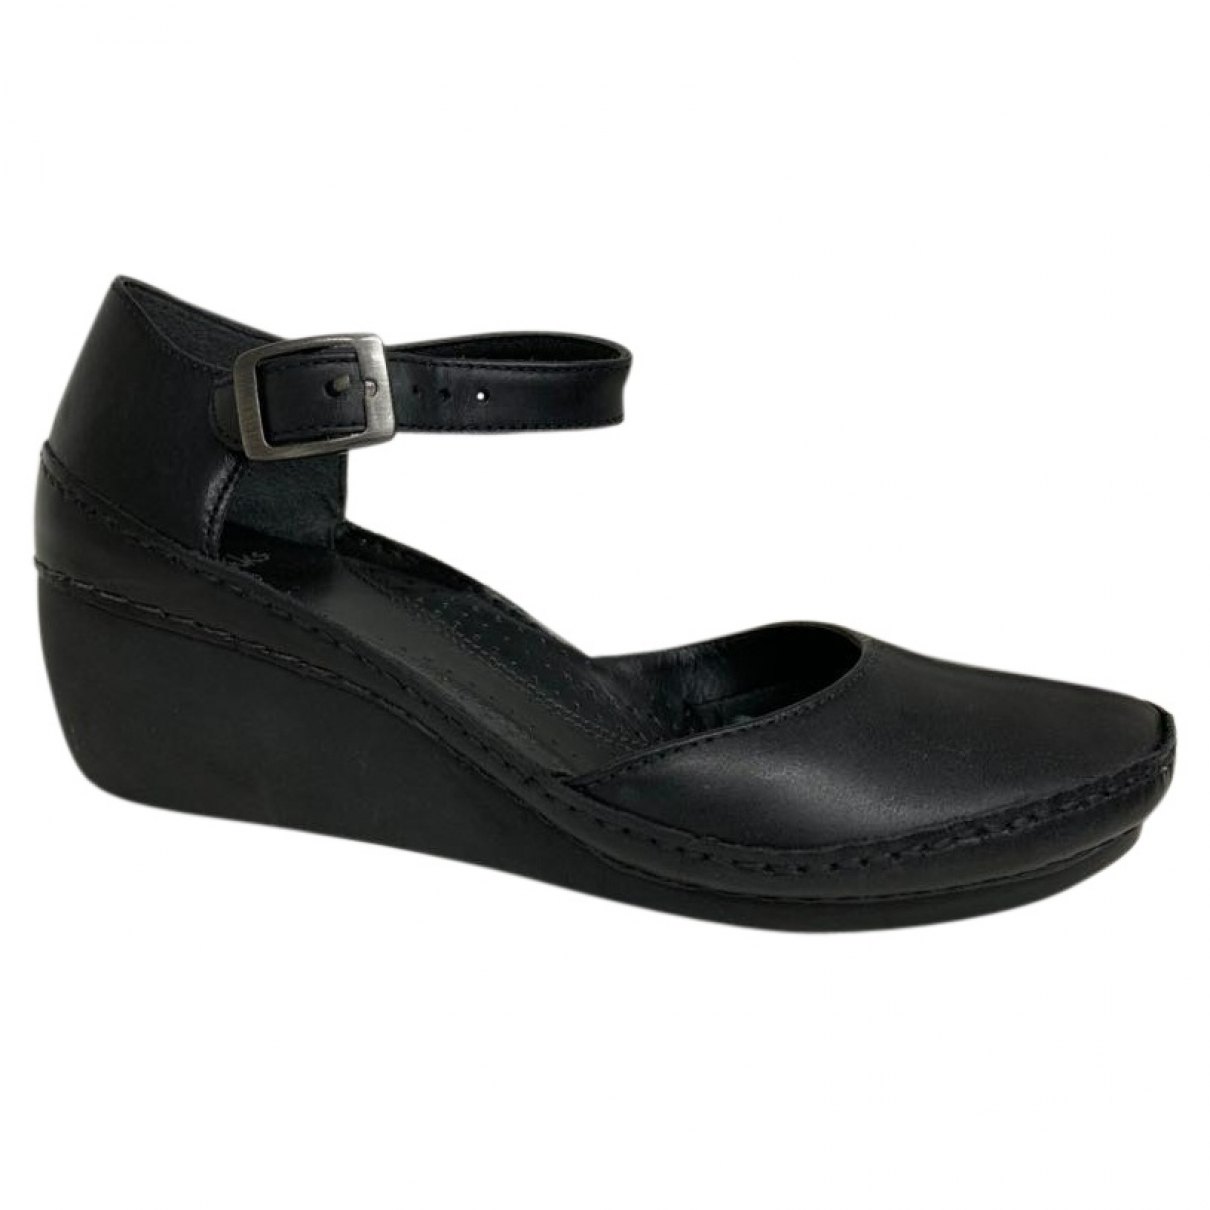 Clarks \N Black Leather Sandals for Women 35.5 EU